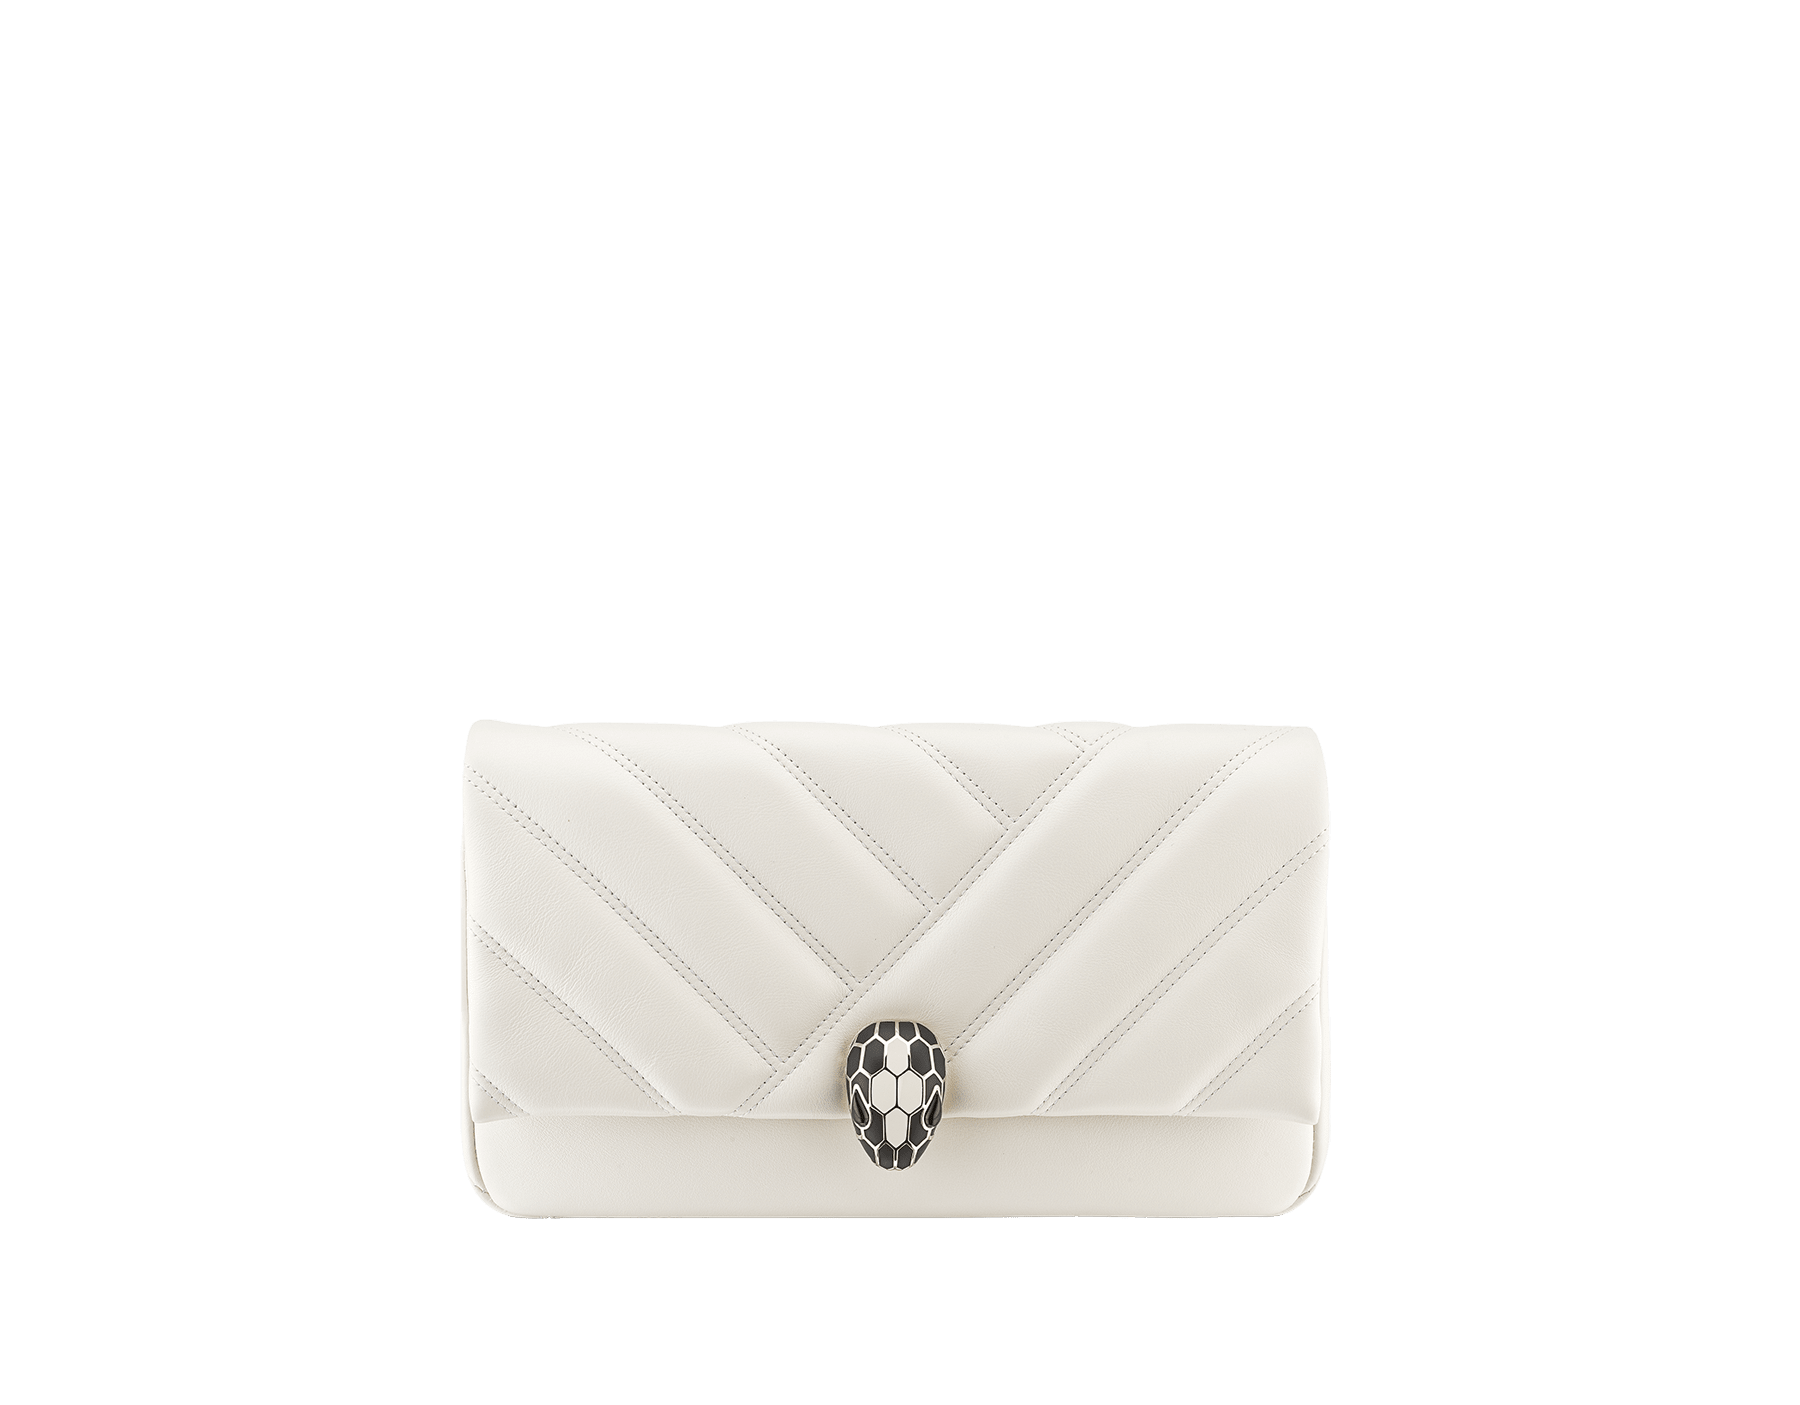 Serpenti Cabochon clutch bag in soft matelassé white calf leather, with a graphic motif. Brass light gold plated tempting snake head closure in black and white enamel and black onyx eyes. 289302 image 1